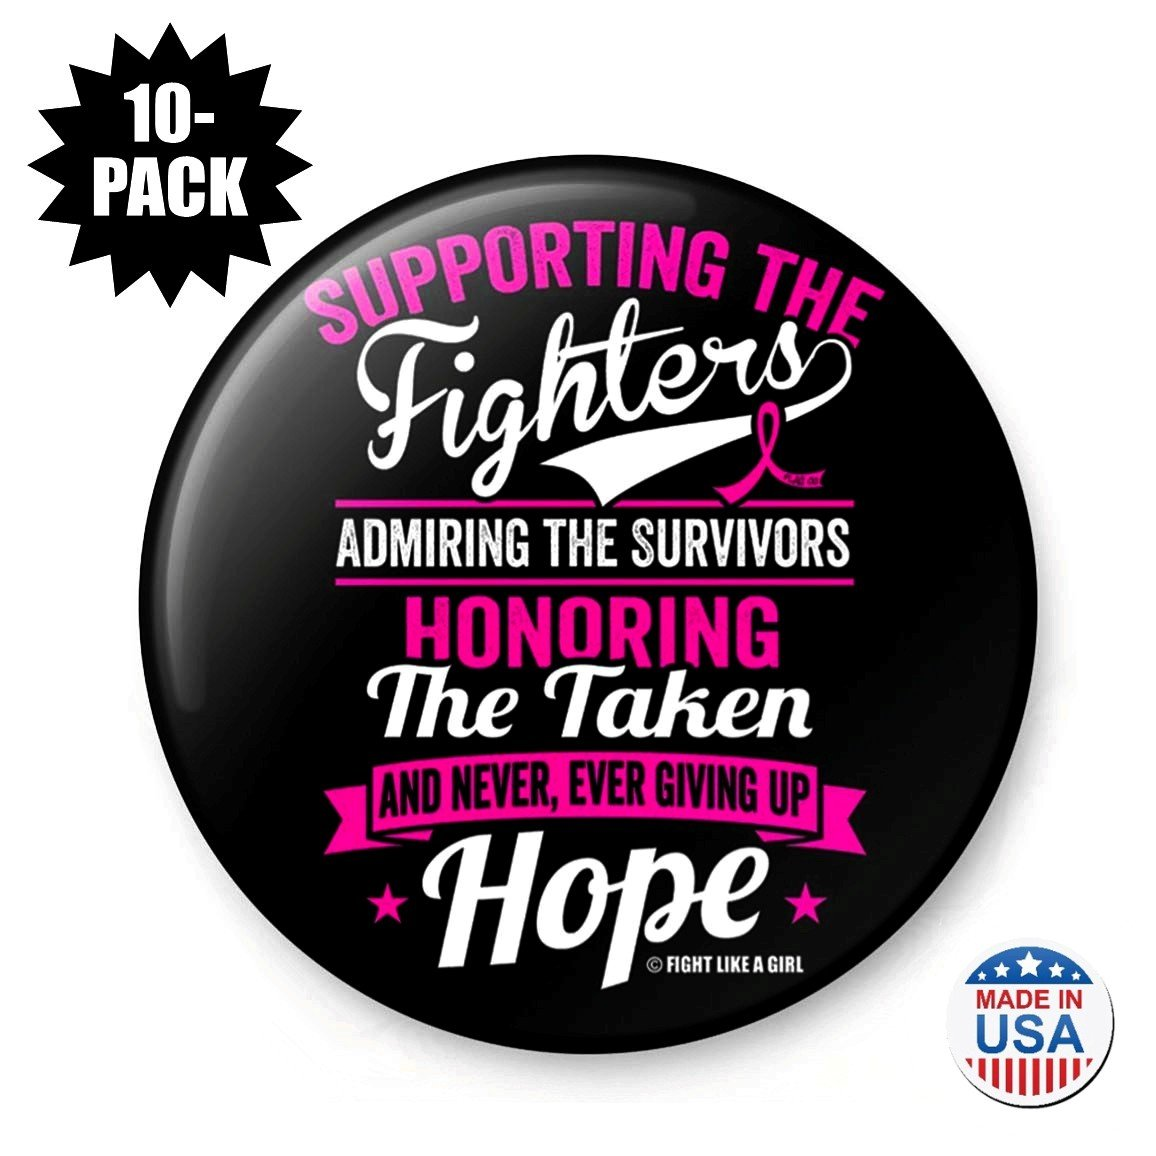 Fight Like a Girl Supporting Admiring Honoring Round Buttons/Pins/Badges for Breast Cancer Awareness, 10-Pack (Pink Ribbon) by Fight Like a Girl